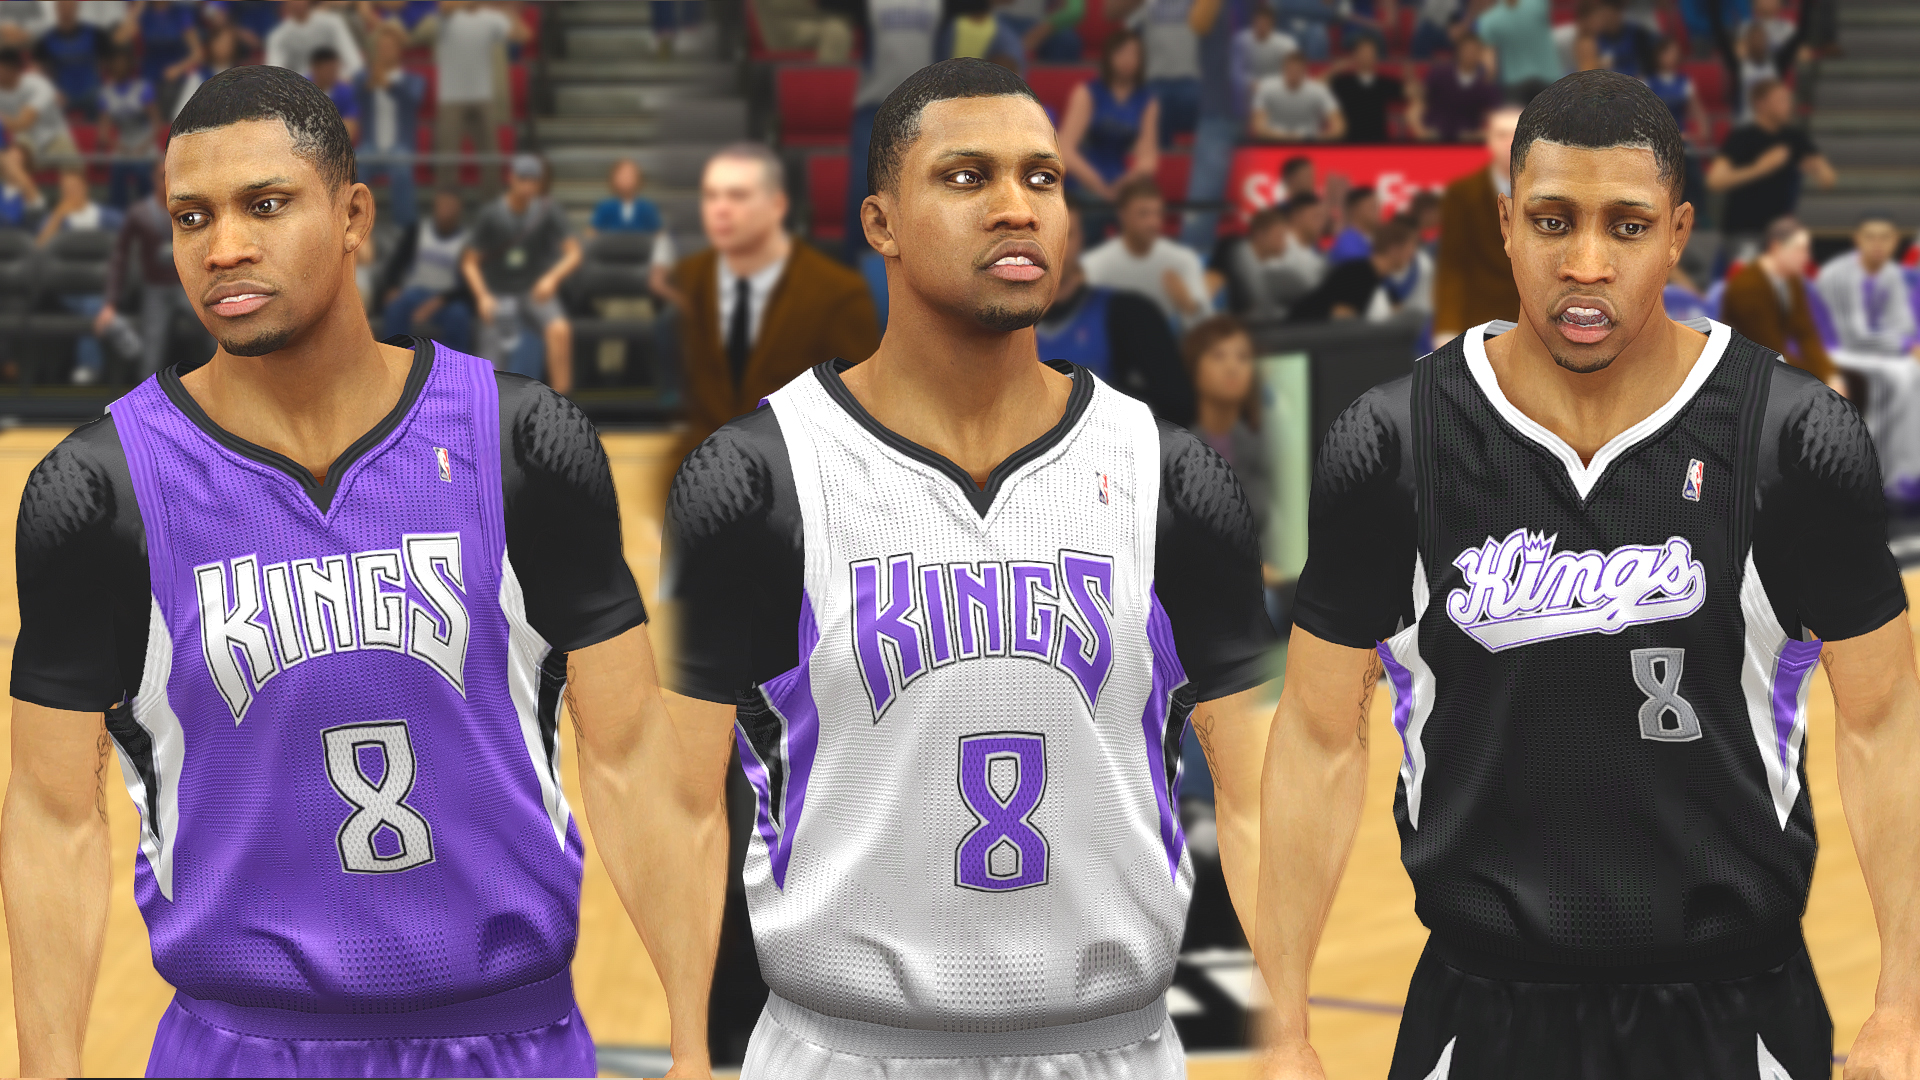 Sacramento Kings Jersey Update